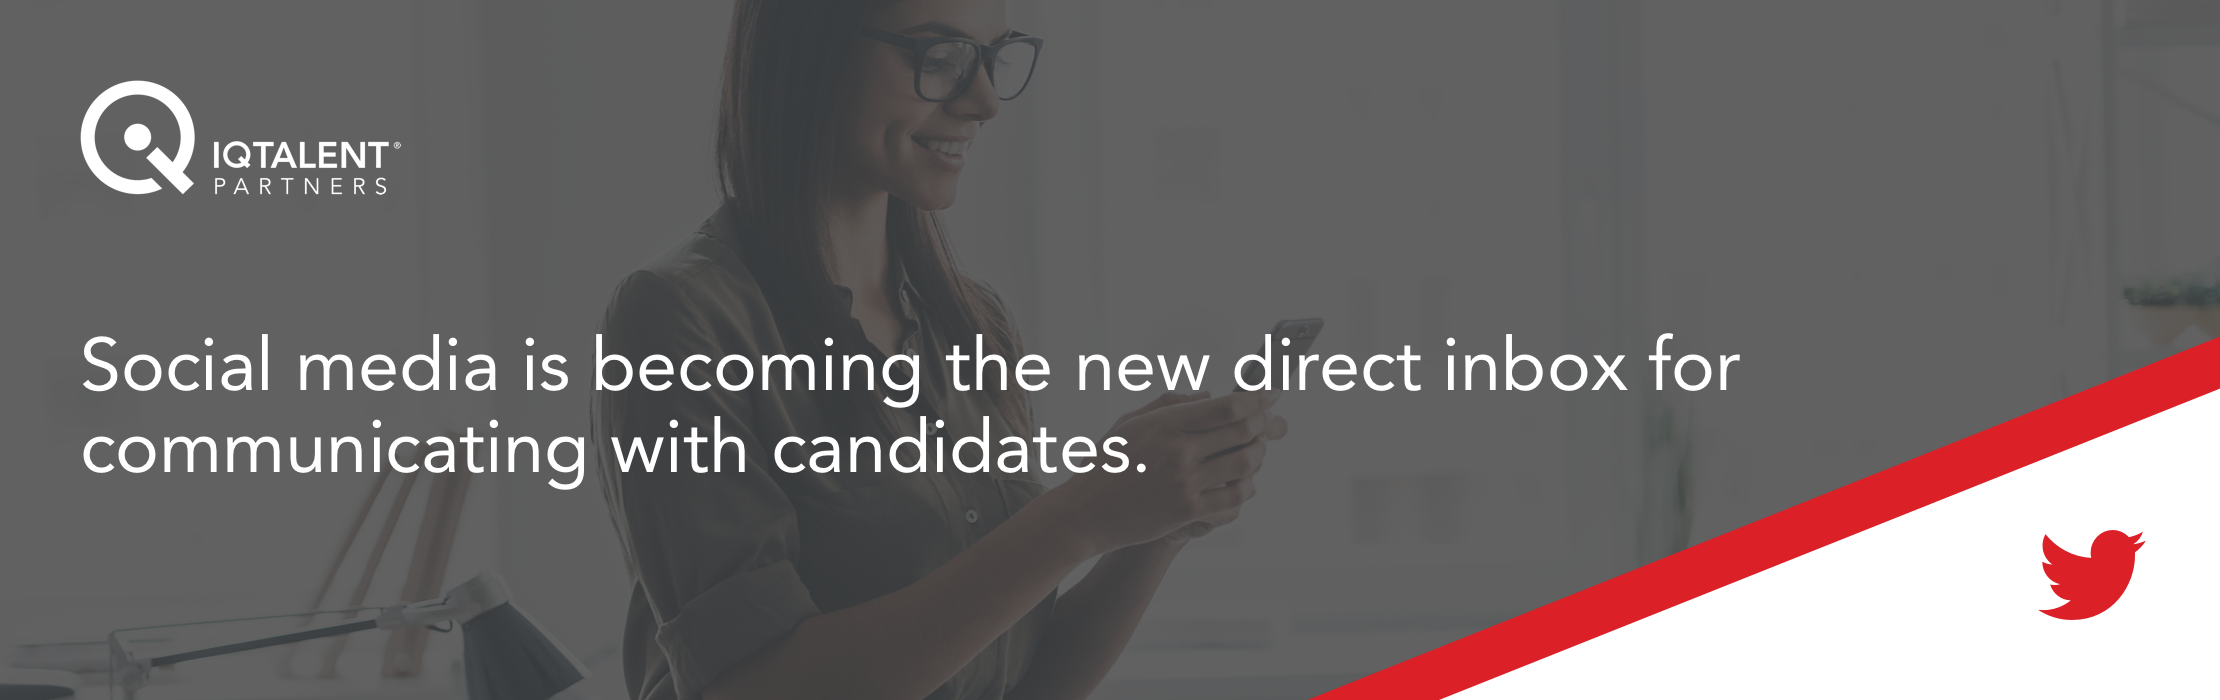 Social media is becoming the new direct inbox for communicating with candidates.